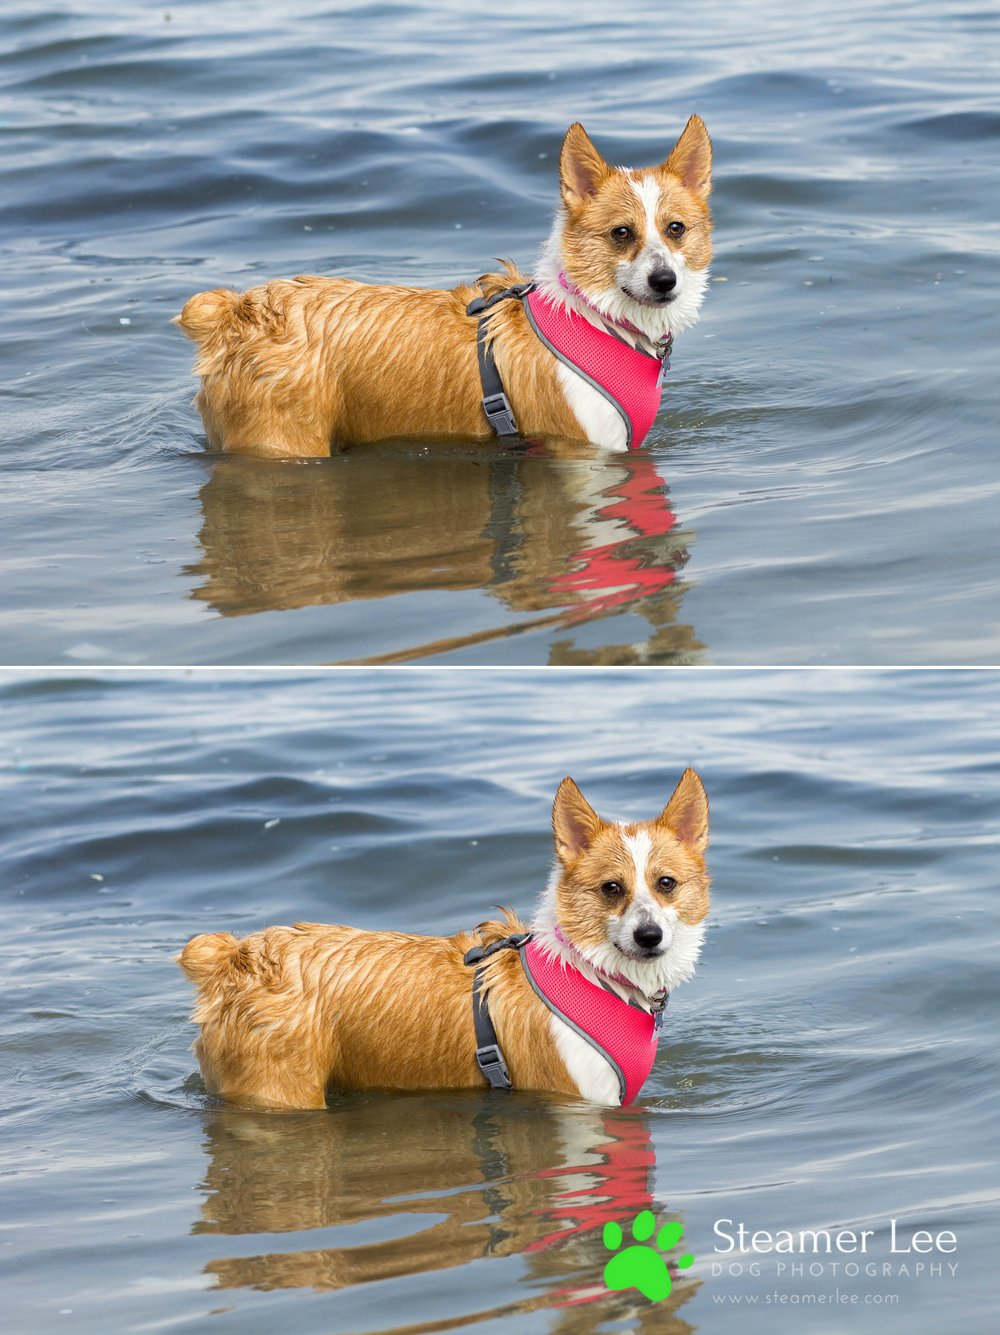 Steamer Lee Dog Photography - July 2017 So Cal Corgi Beach Day - Vol. 3 - 13.jpg